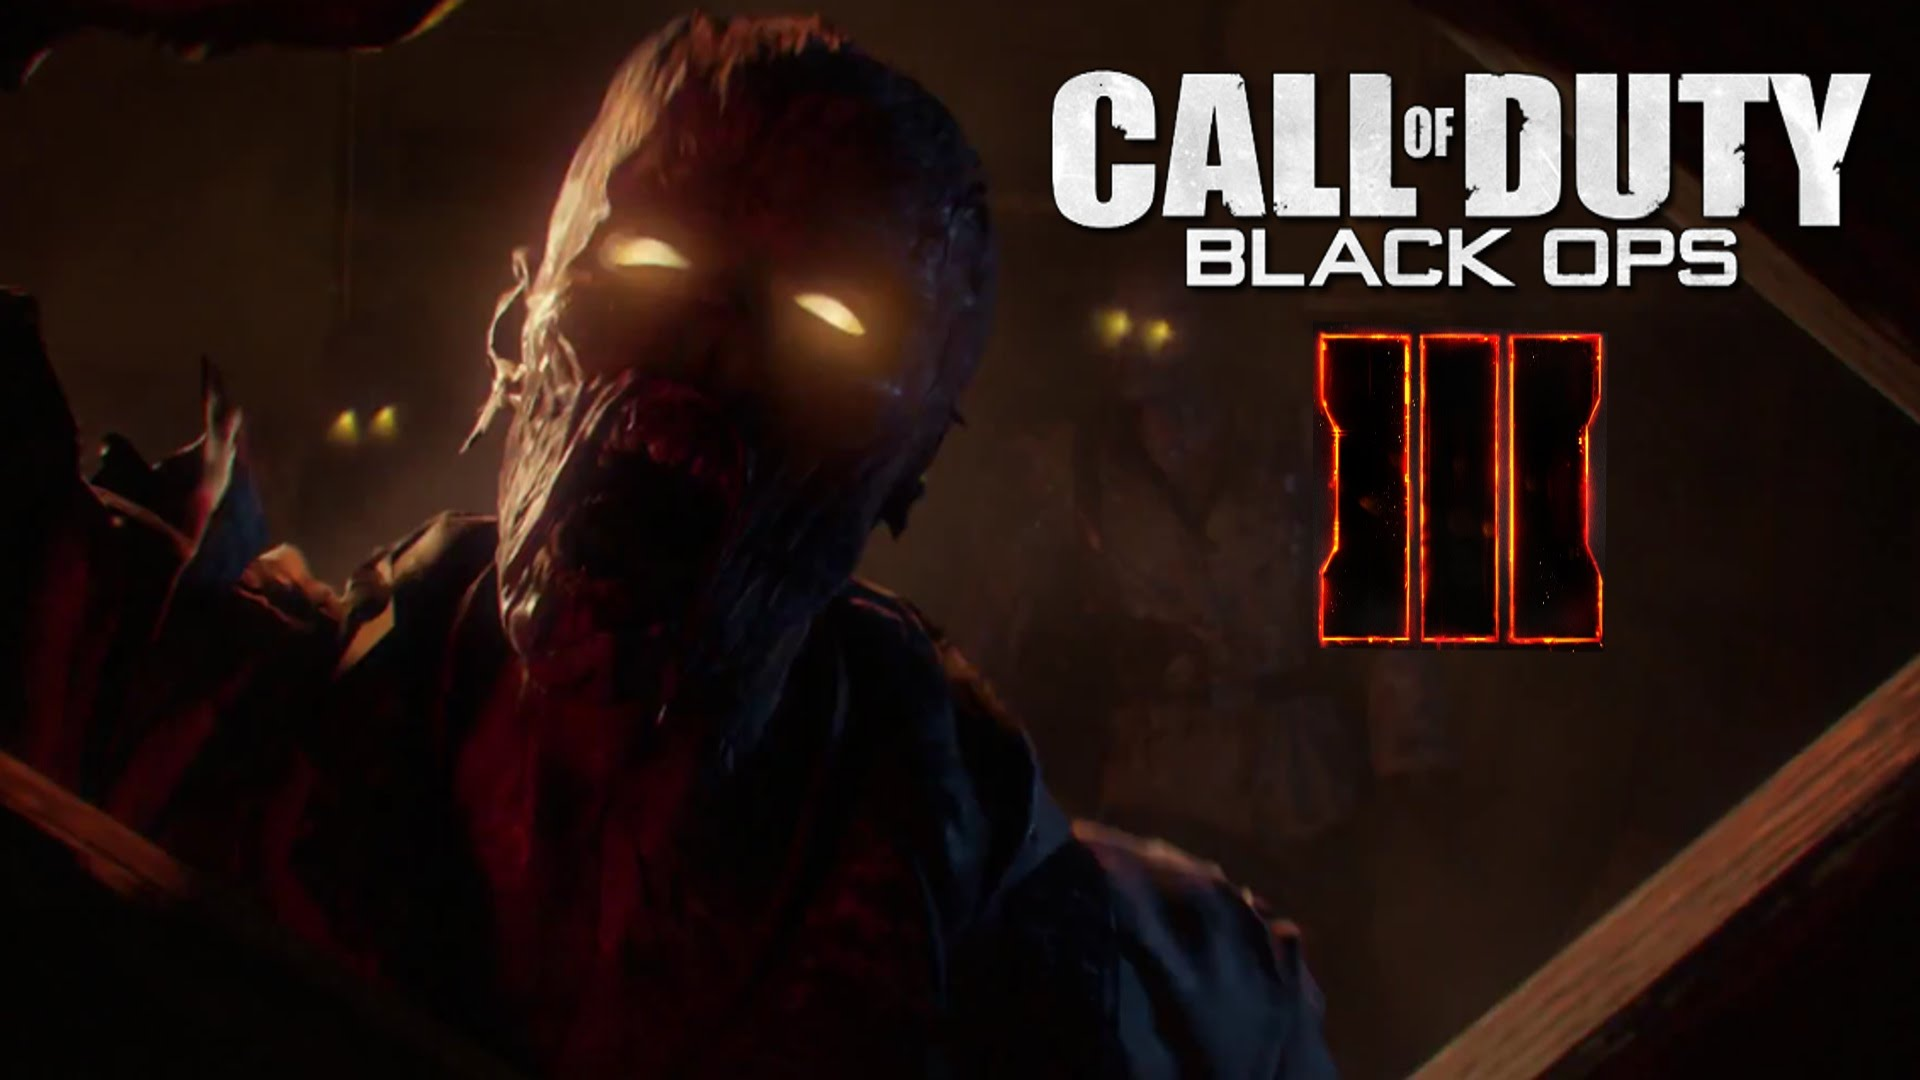 Call Of Duty Black Ops 3 Zombie Wallpaper Image Armies Of The